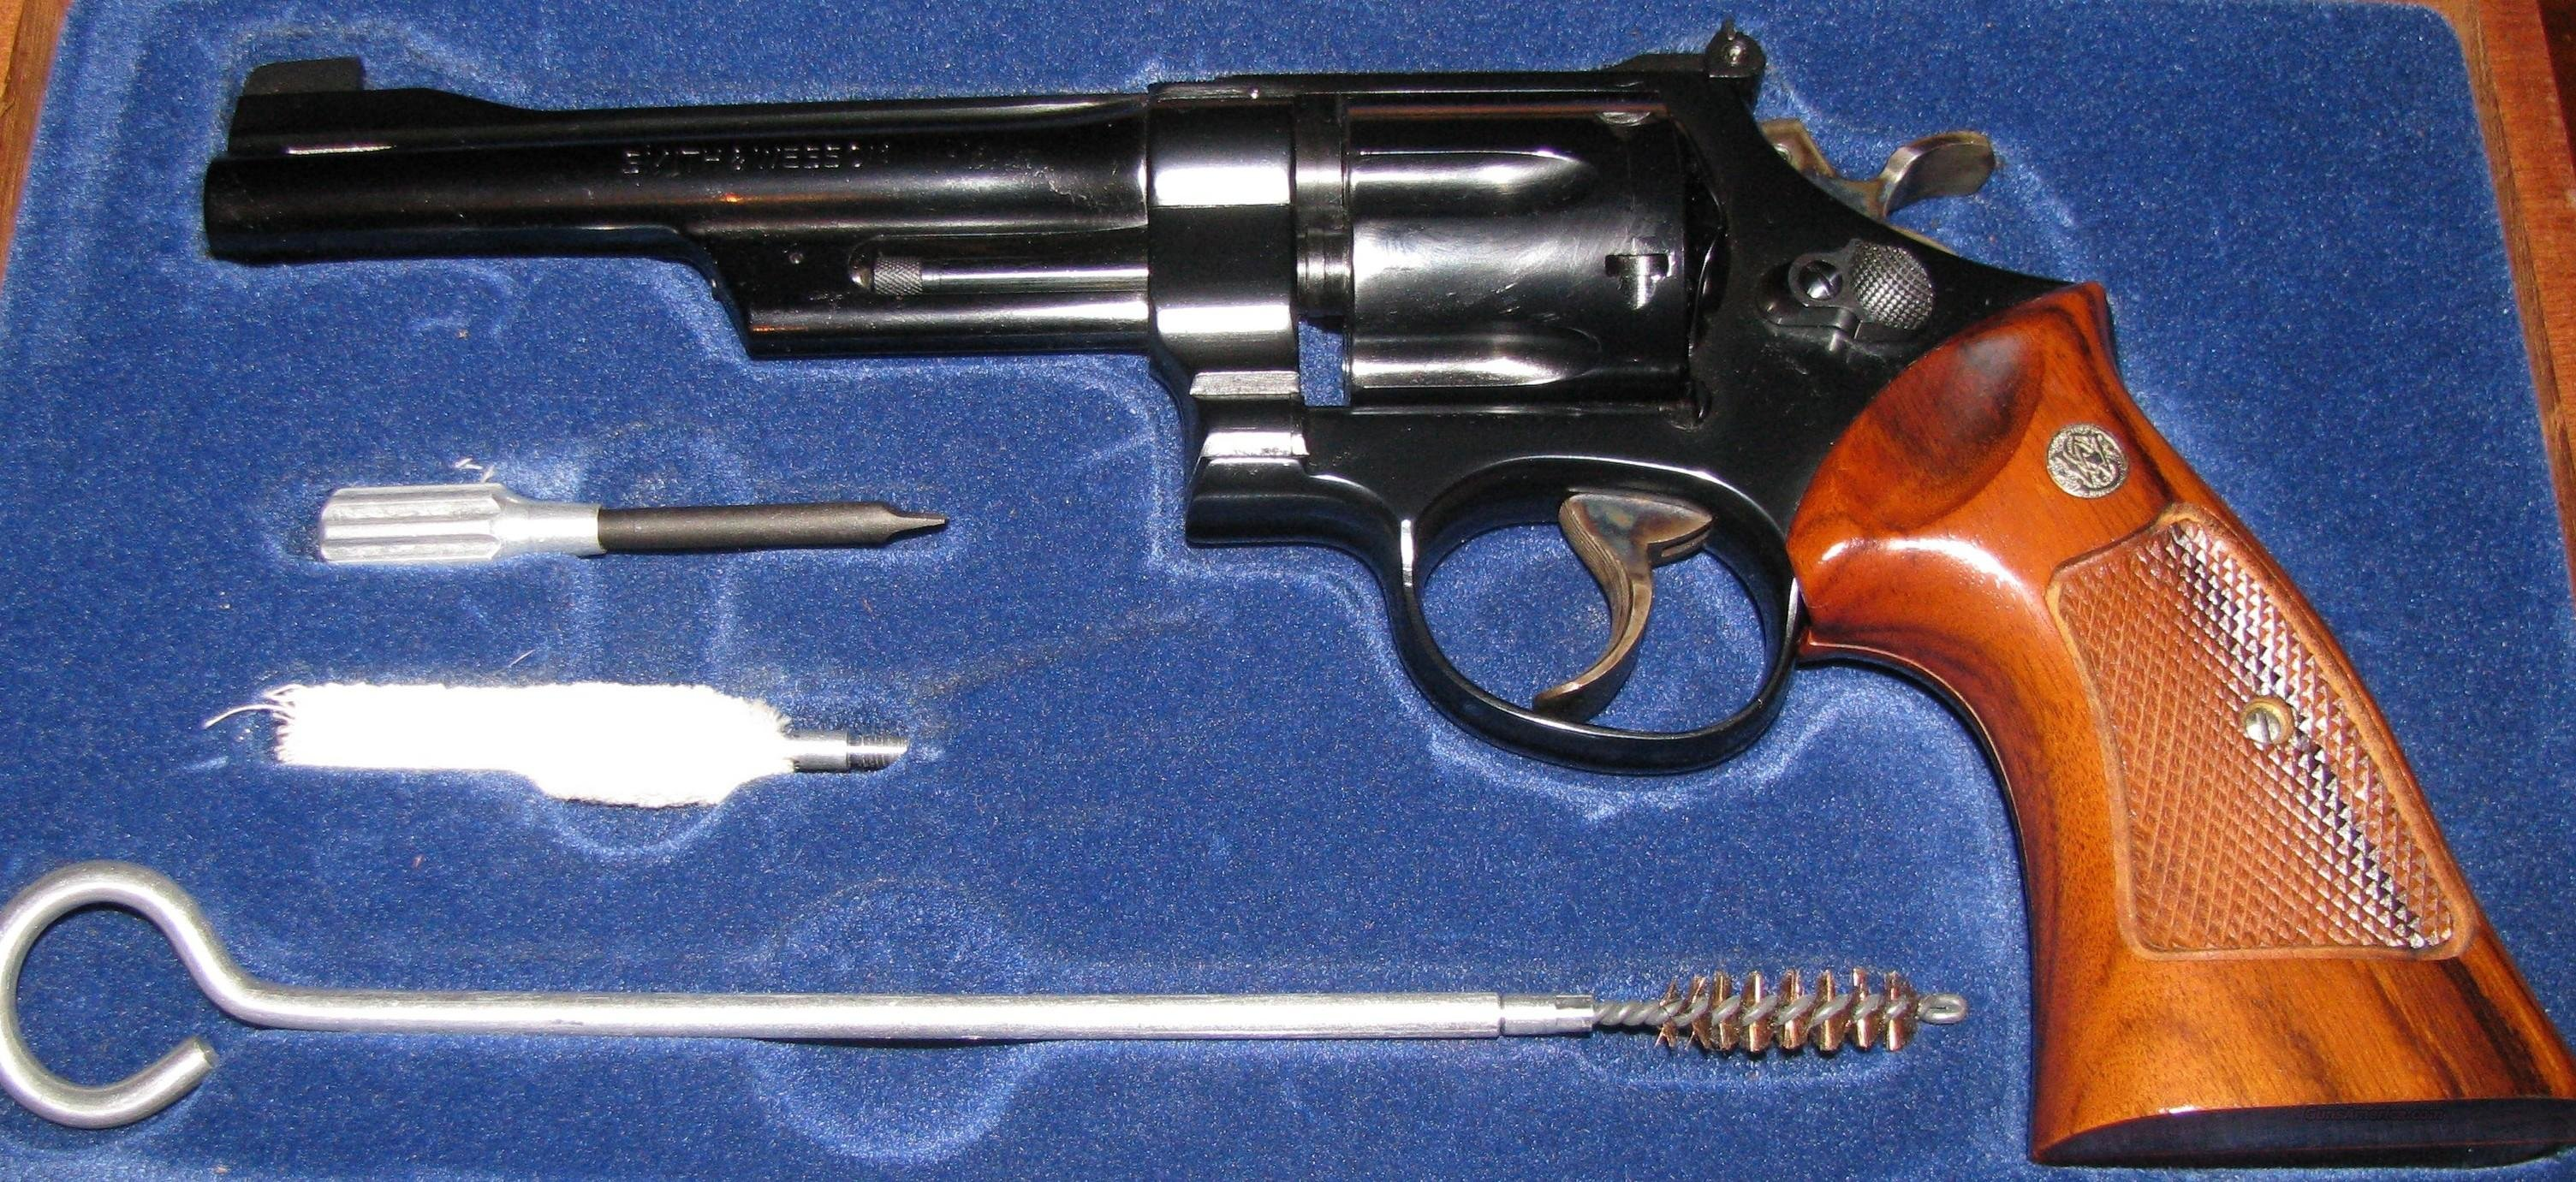 "Smith & Wesson Model 27-2 357 Mag 6"" Barrel - Discounted Price!  Guns > Pistols > Smith & Wesson Revolvers > Full Frame Revolver"